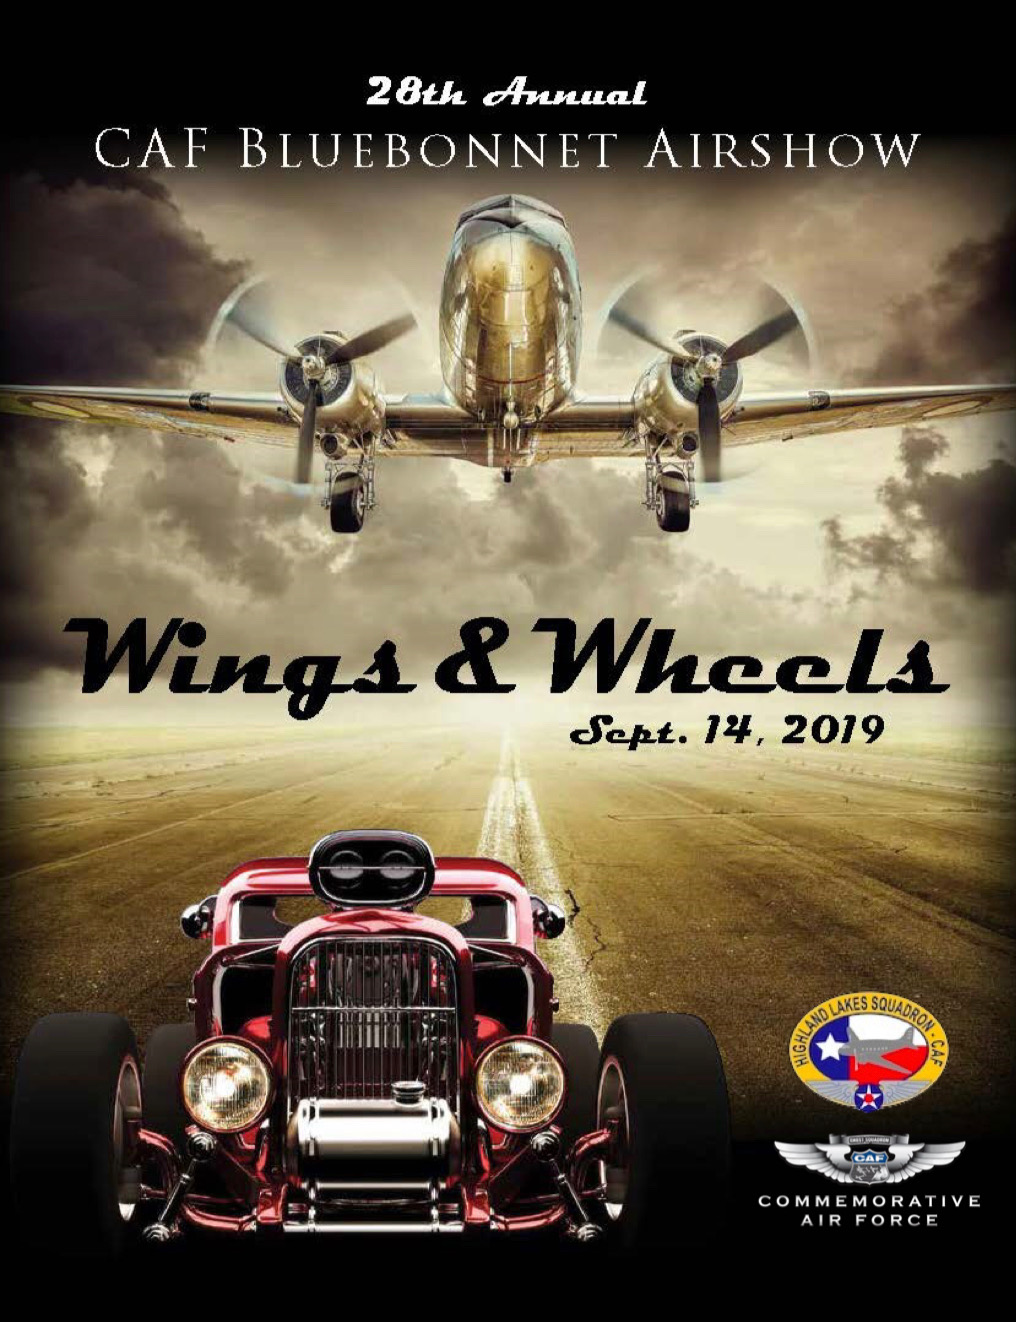 Printed Flyer with Historic airplane and hot rod automobile. Airshow Dates Sept 14 2019